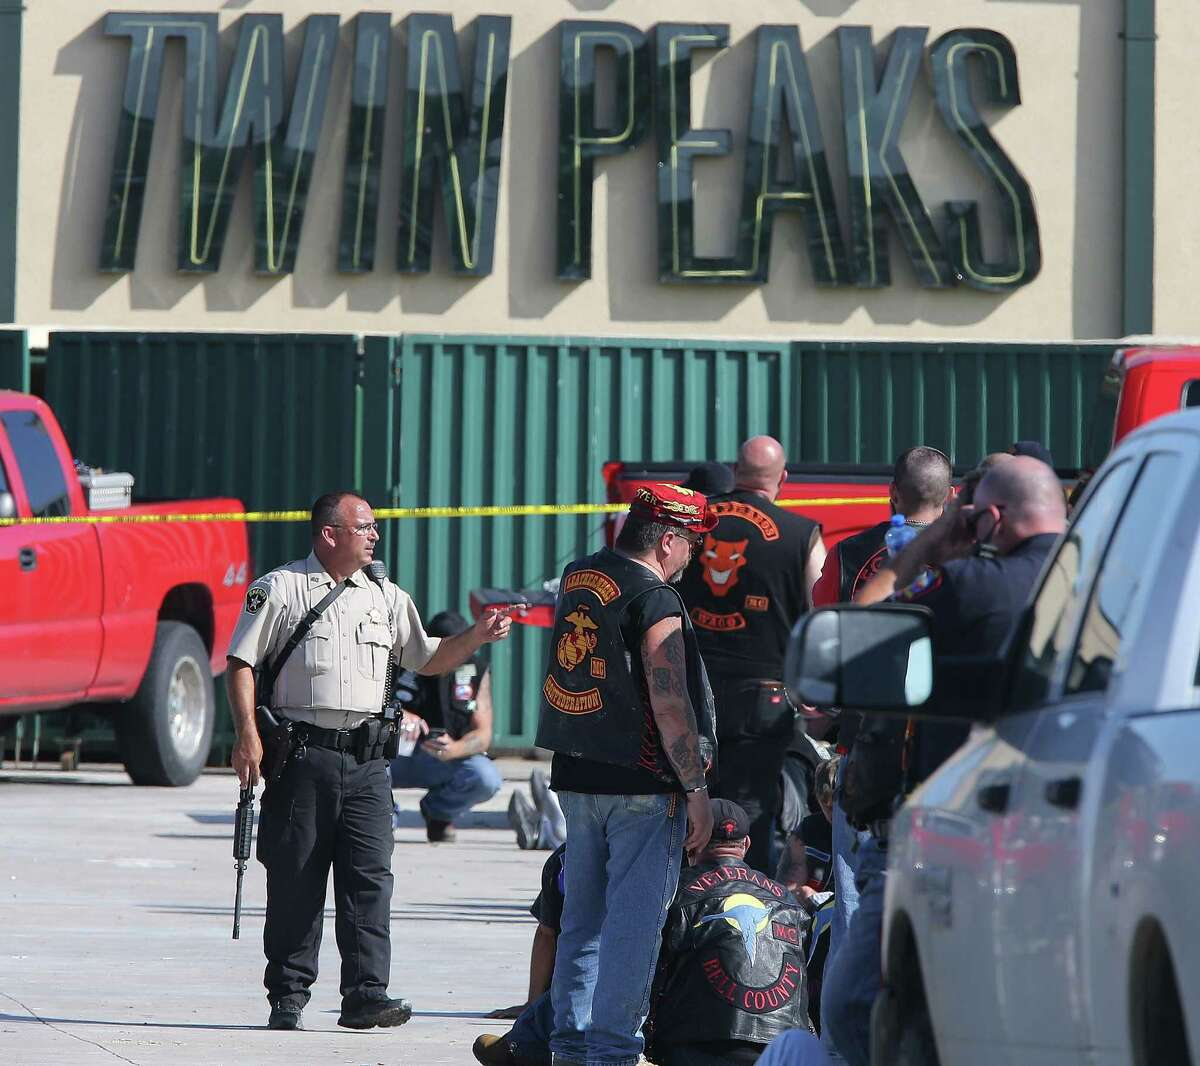 A shootout between motorcycle gangs at a Twin Peaks restaurant in Waco in May 2016 resulted in nine deaths and 177 arrests. Keep going for a look at what you need to know about the Bandidos motorcycle gang that was at the heart of the Twin Peaks shootout.